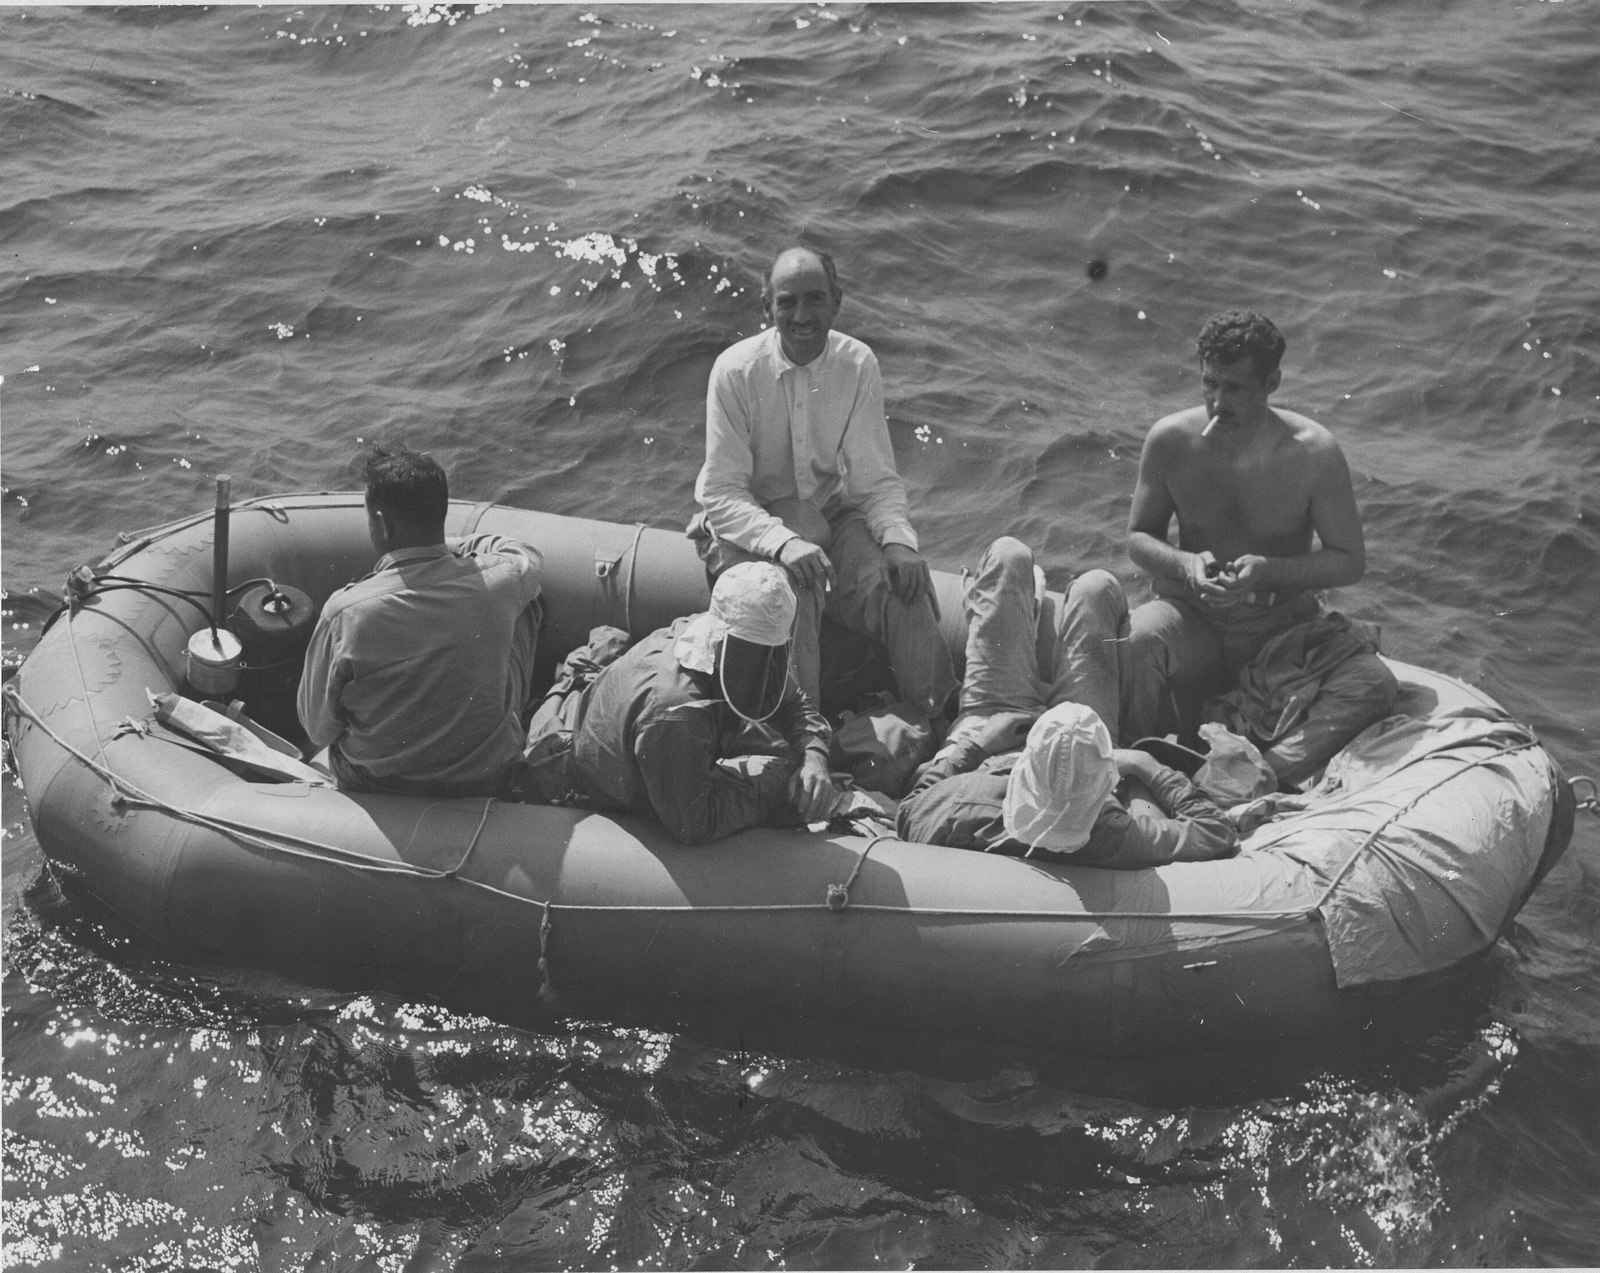 Photograph of Men Testing Rubber Life-Rafts and Accessories